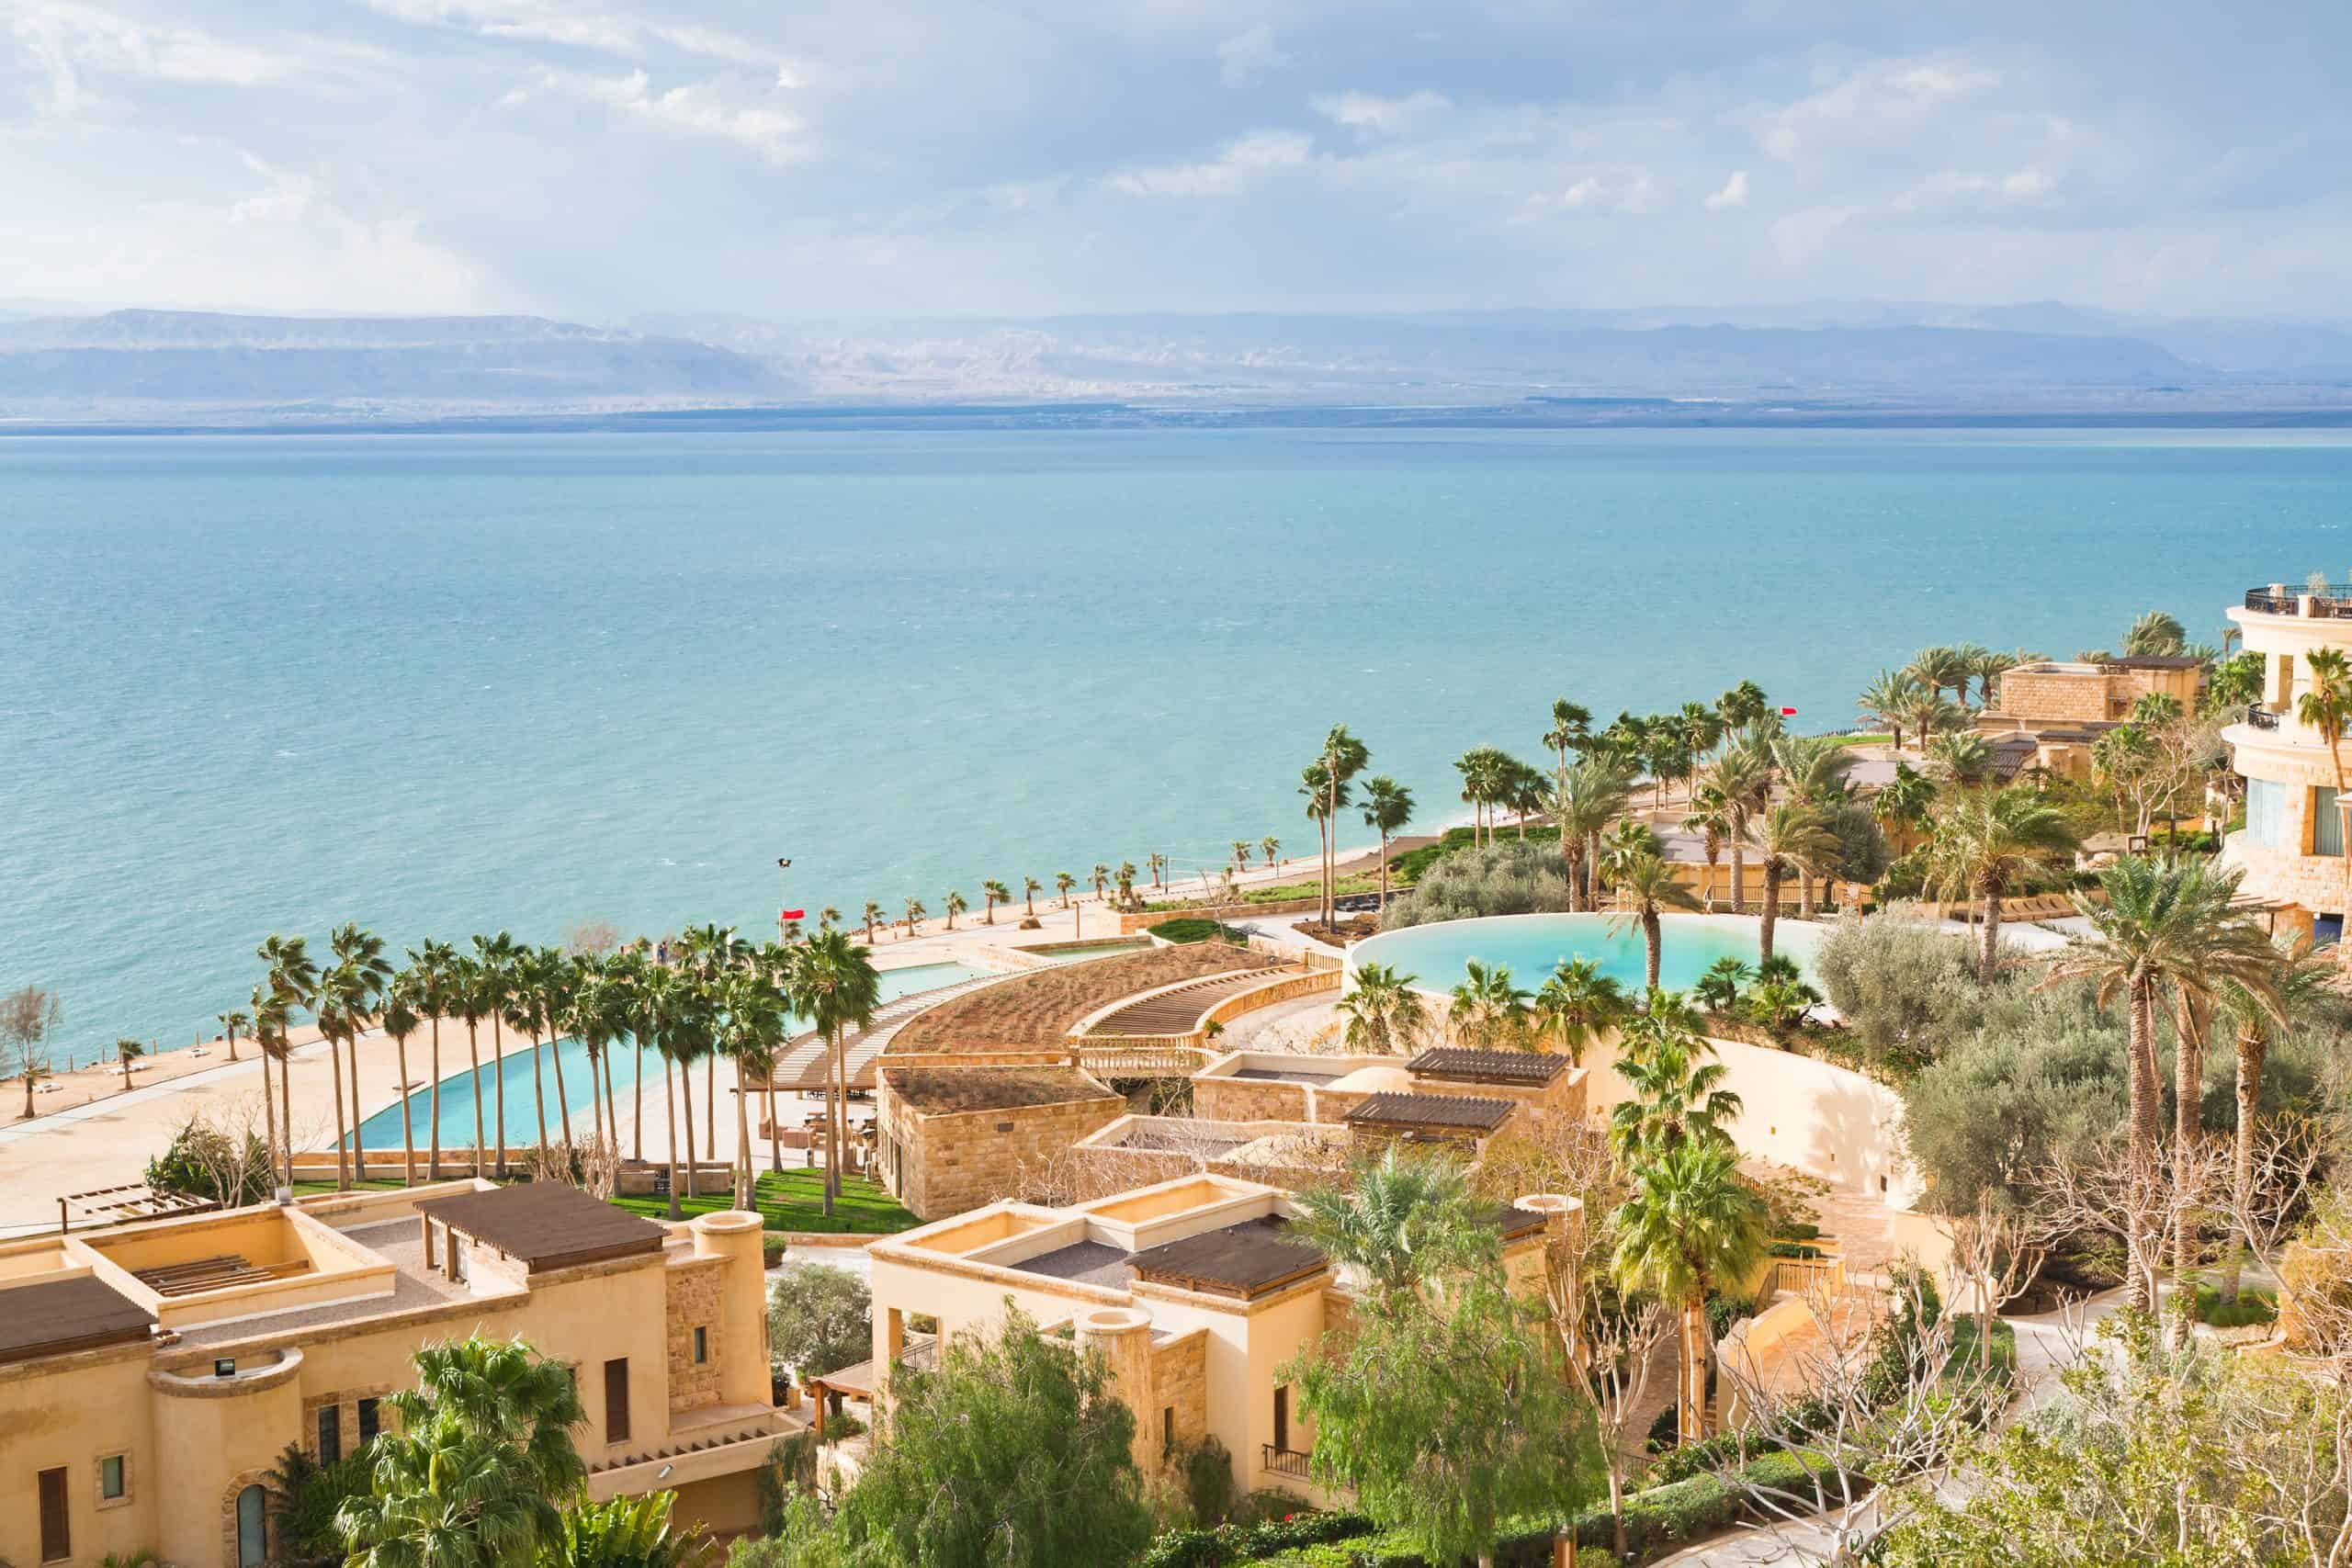 View of a resort on the Jordanian shore of the Dead Sea